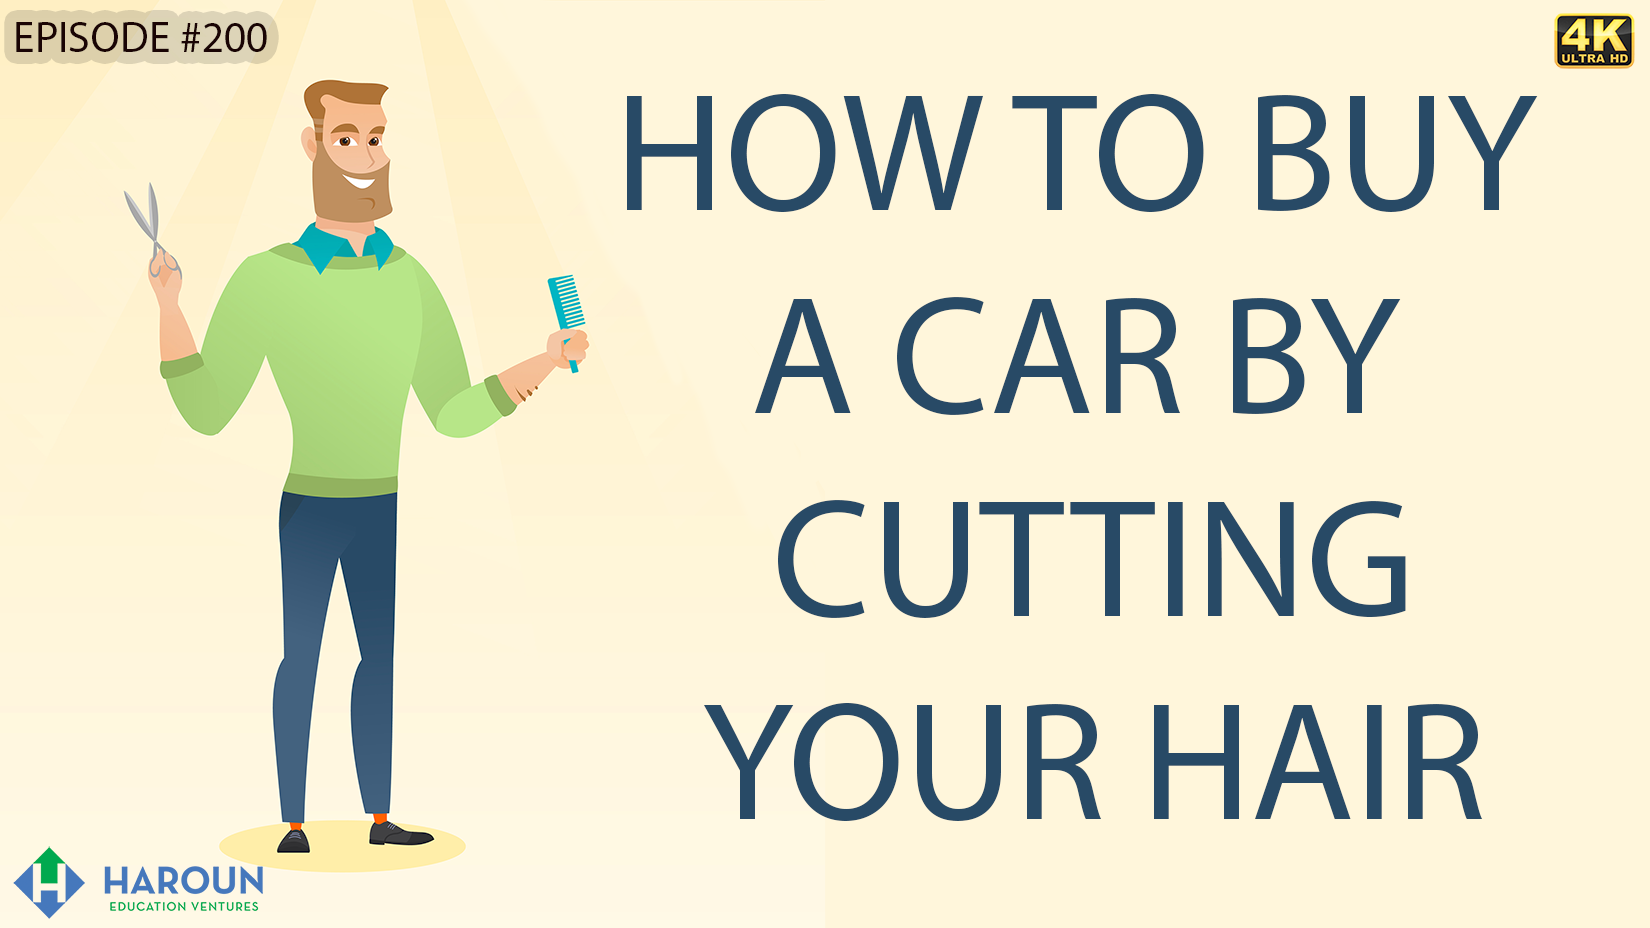 DAY_200_2_15_19_How to Buy a Car By Cutting Your Hair!.png